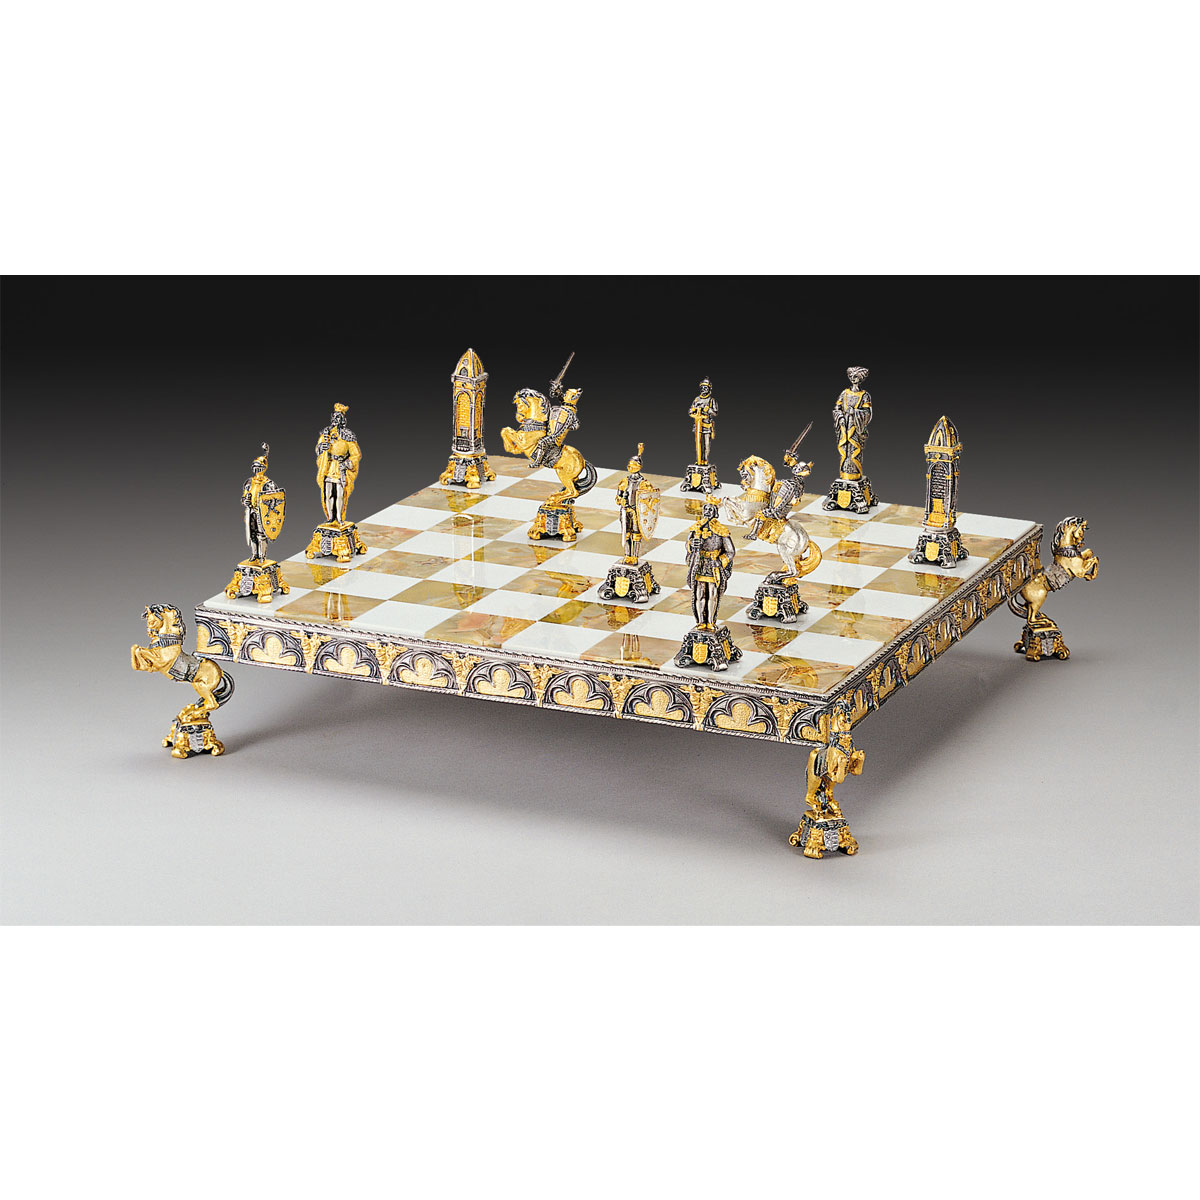 Medieval Themed Chess Board - Gold & Silver - Medium